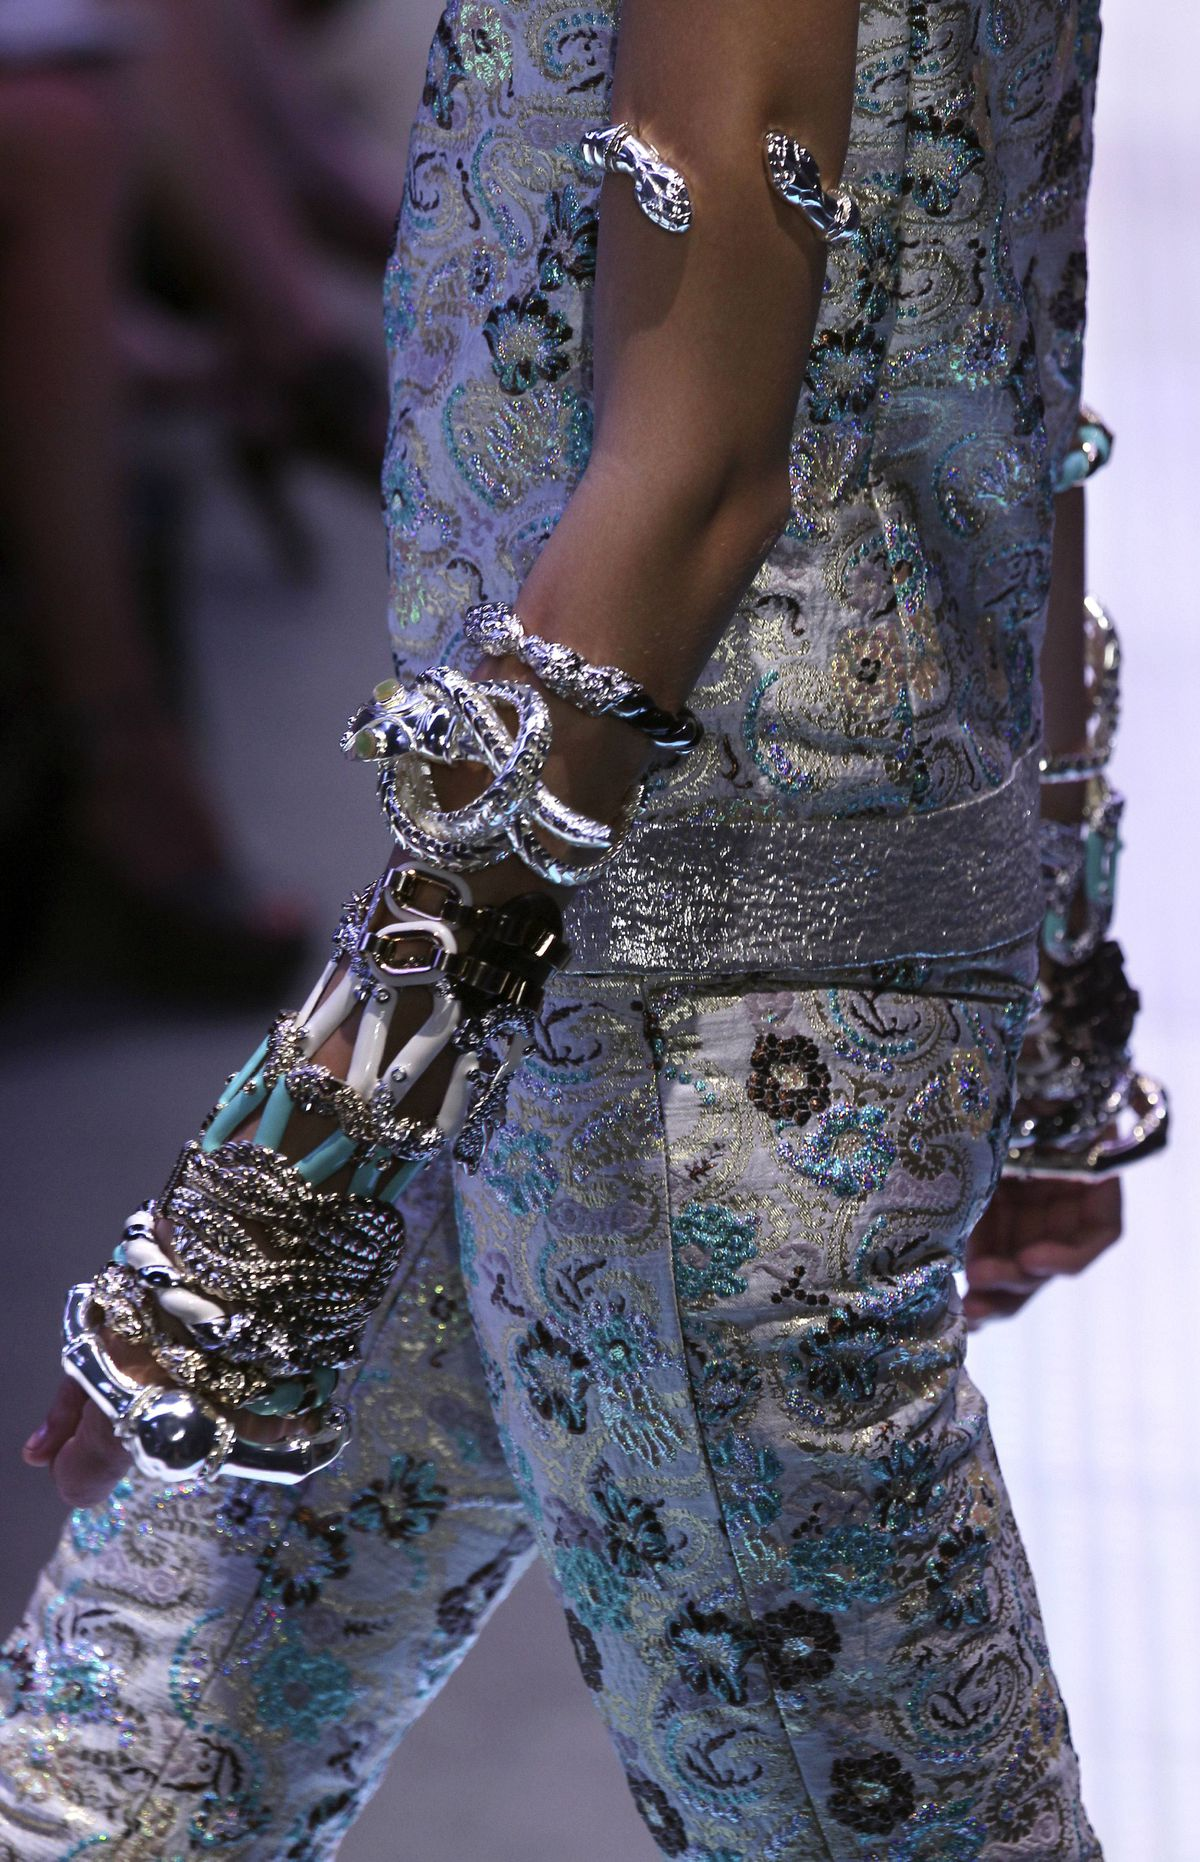 Ever the maximalist, Valli layered bangle upon cuff upon bracelet toward the end of the collection. Because nothing says edgy socialite like an arm adorned in precious metal and stone.